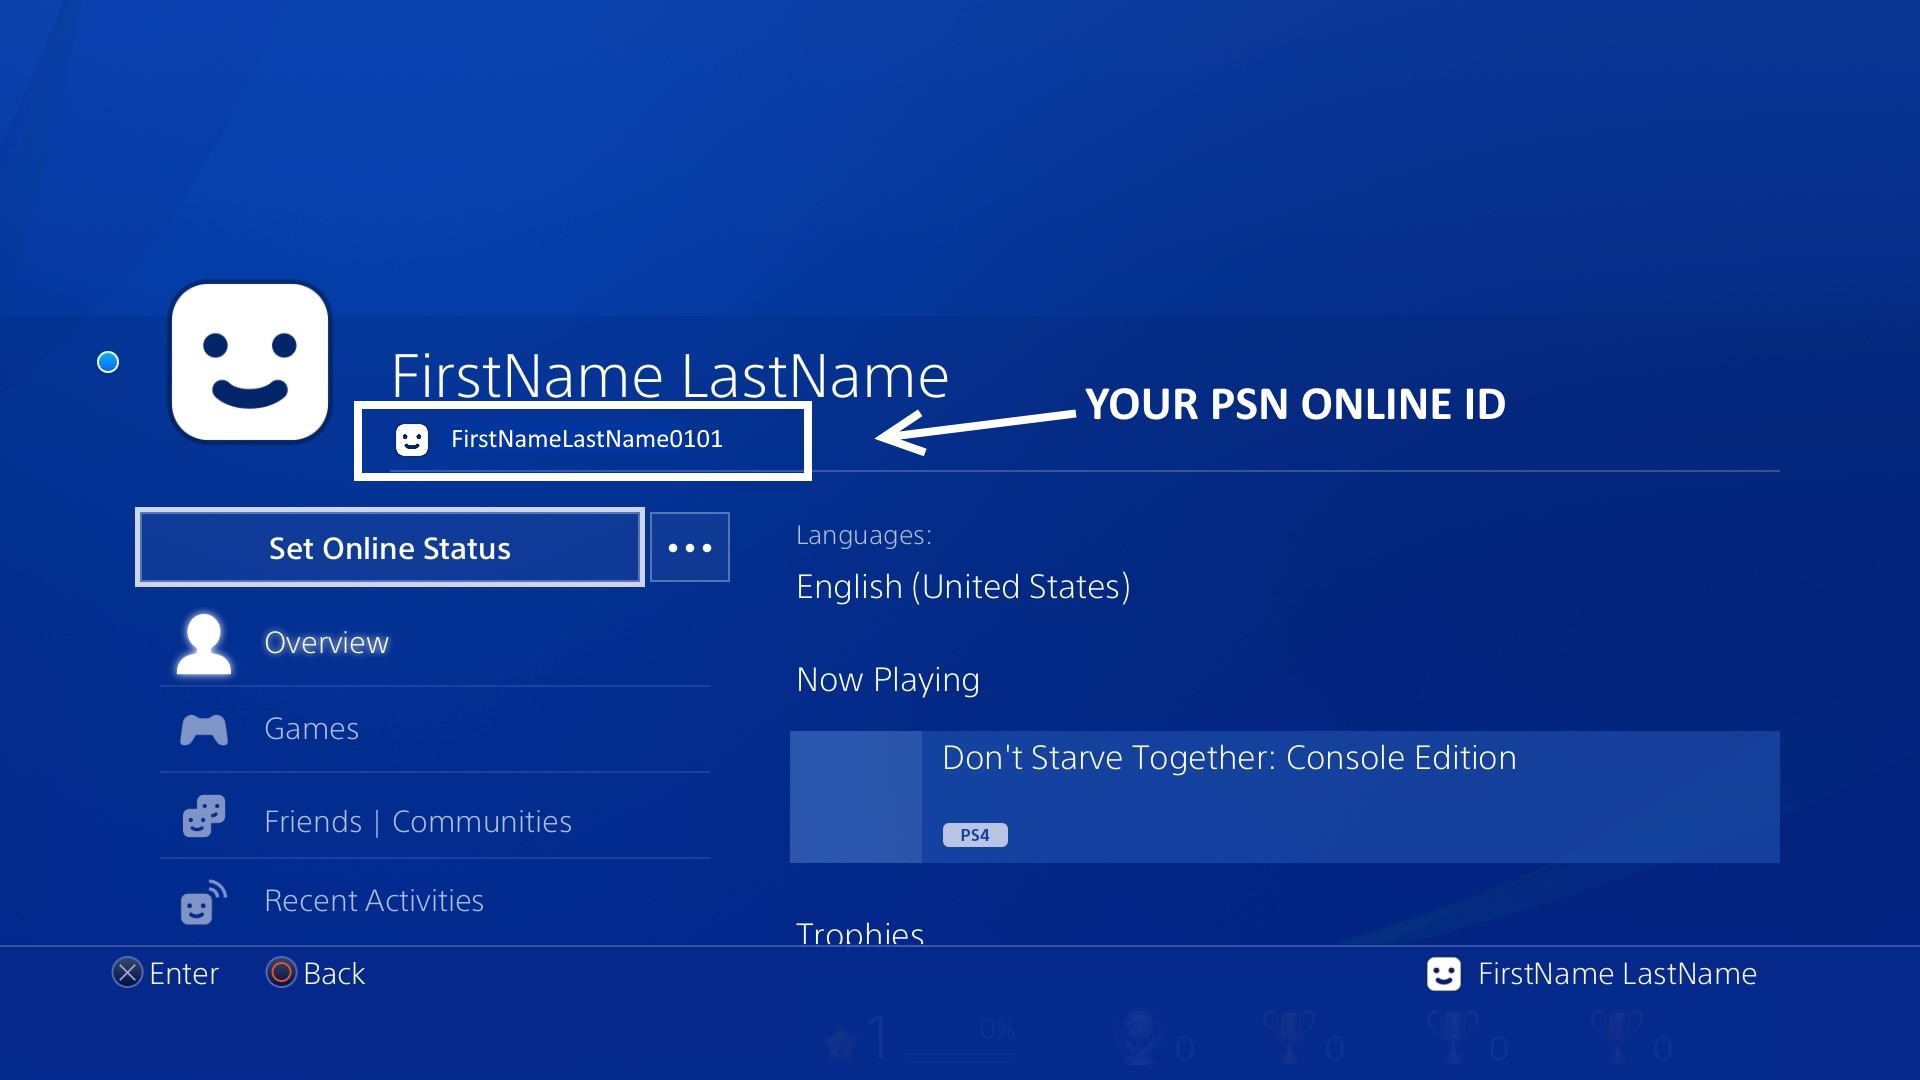 psn_online_id.png